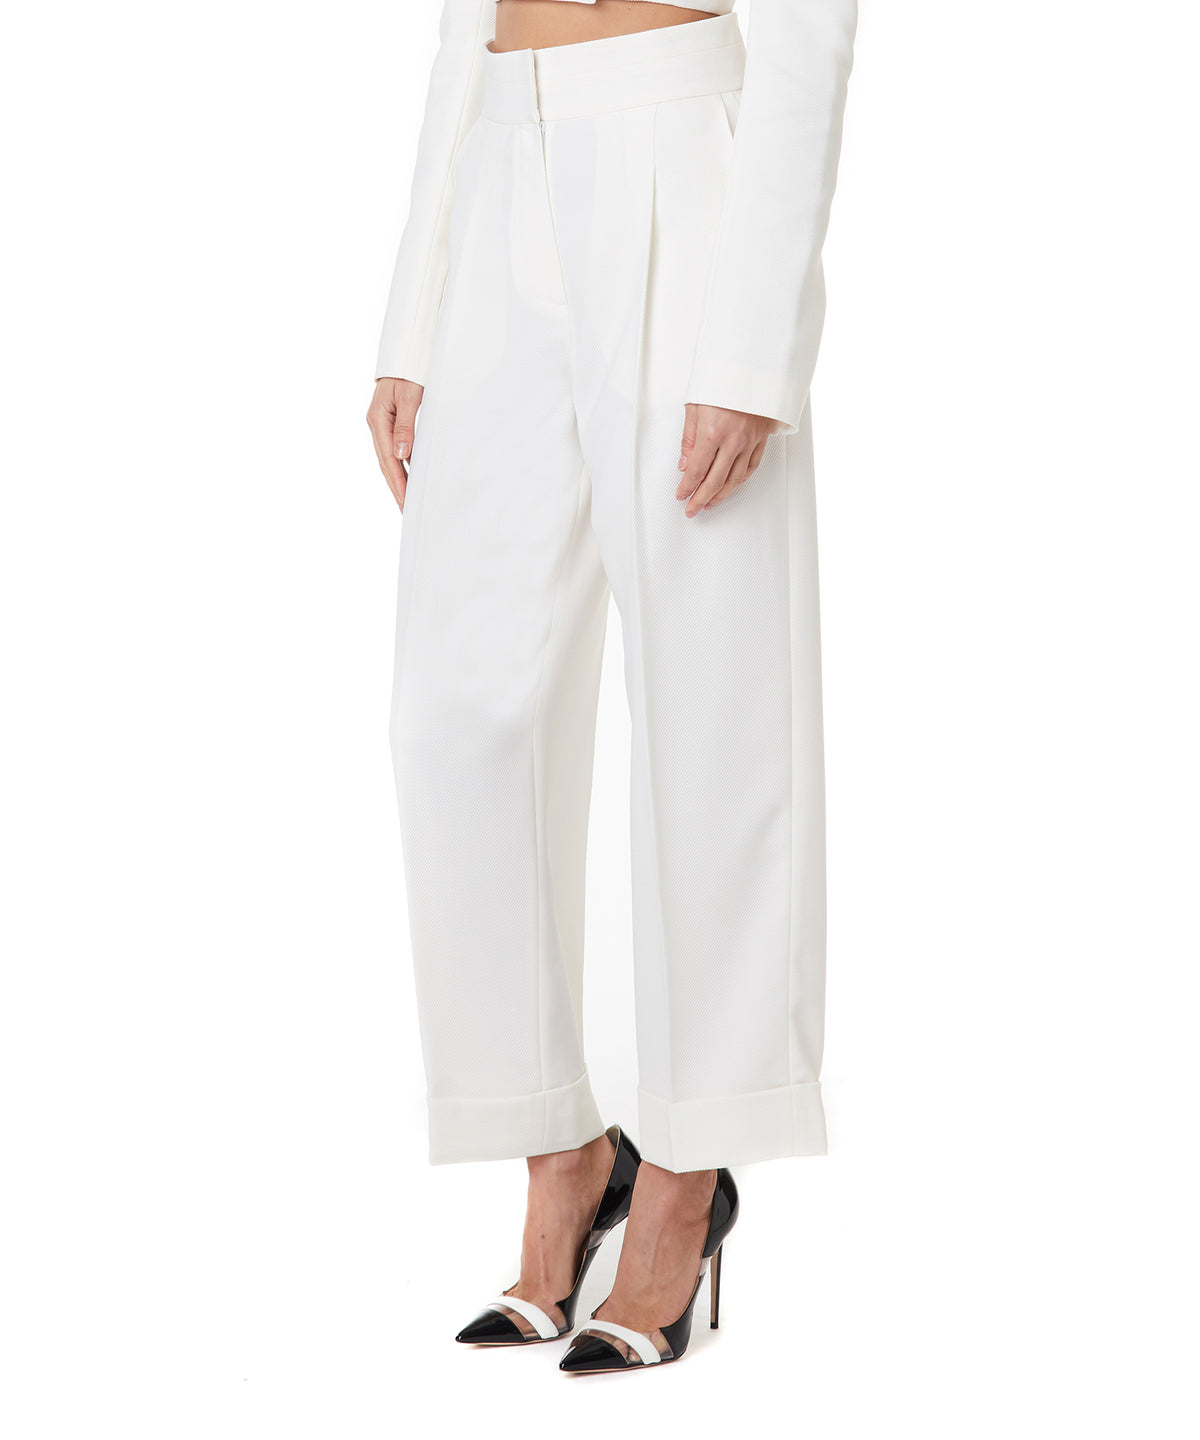 Marianna Senchina Waisted Women Milky High Trousers